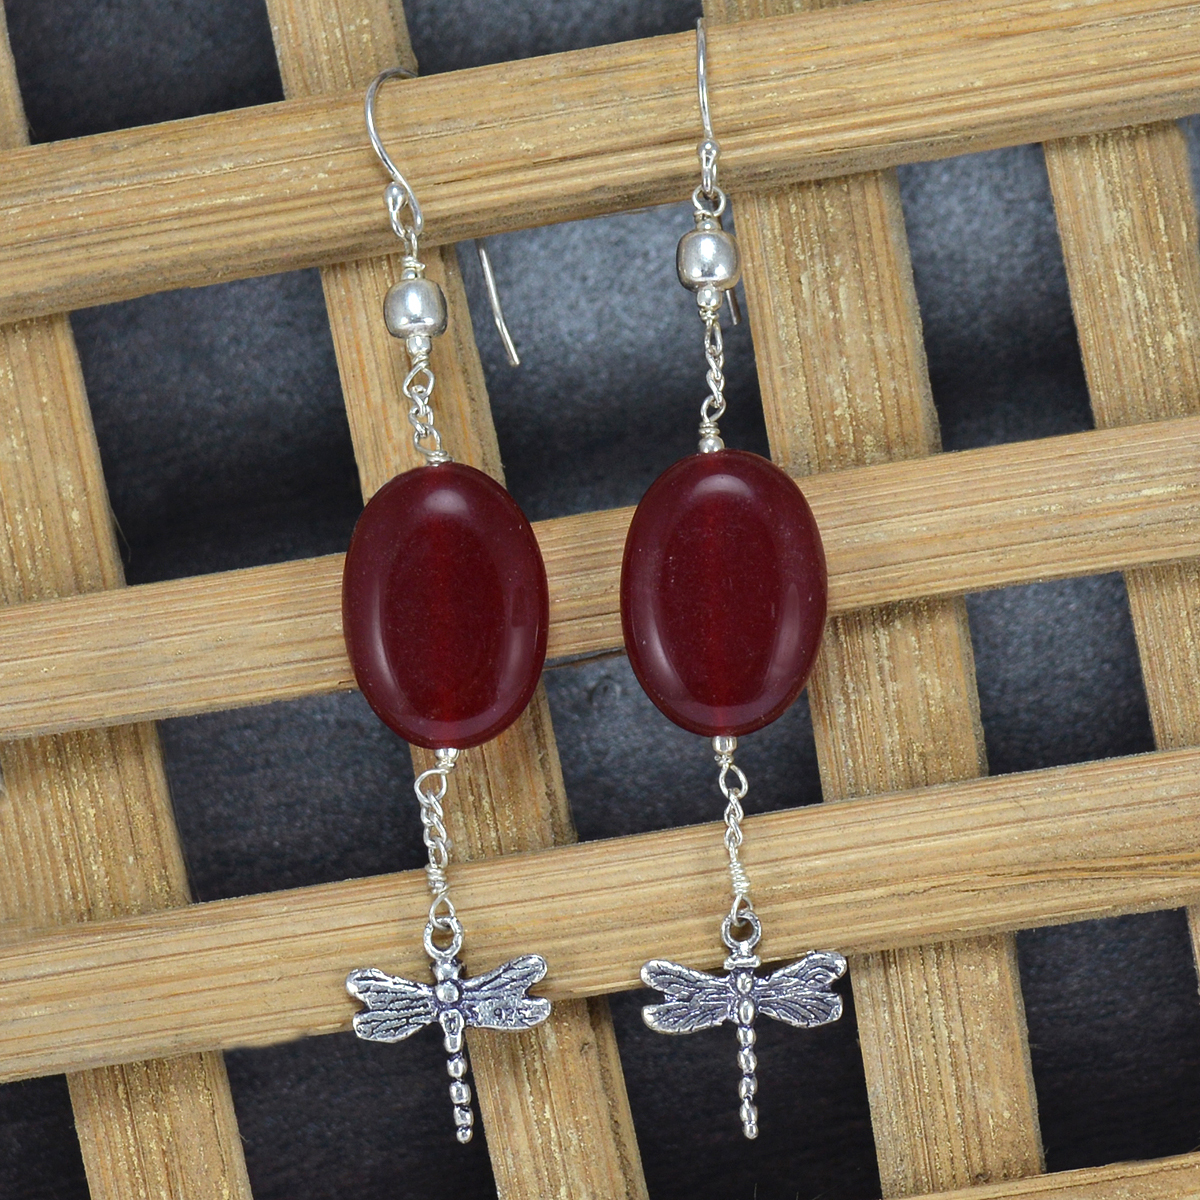 Handmade Red Onyx, Handmade Jewelry Manufacturer 925 Sterling Silver, Earring With Jaipur Rajasthan India